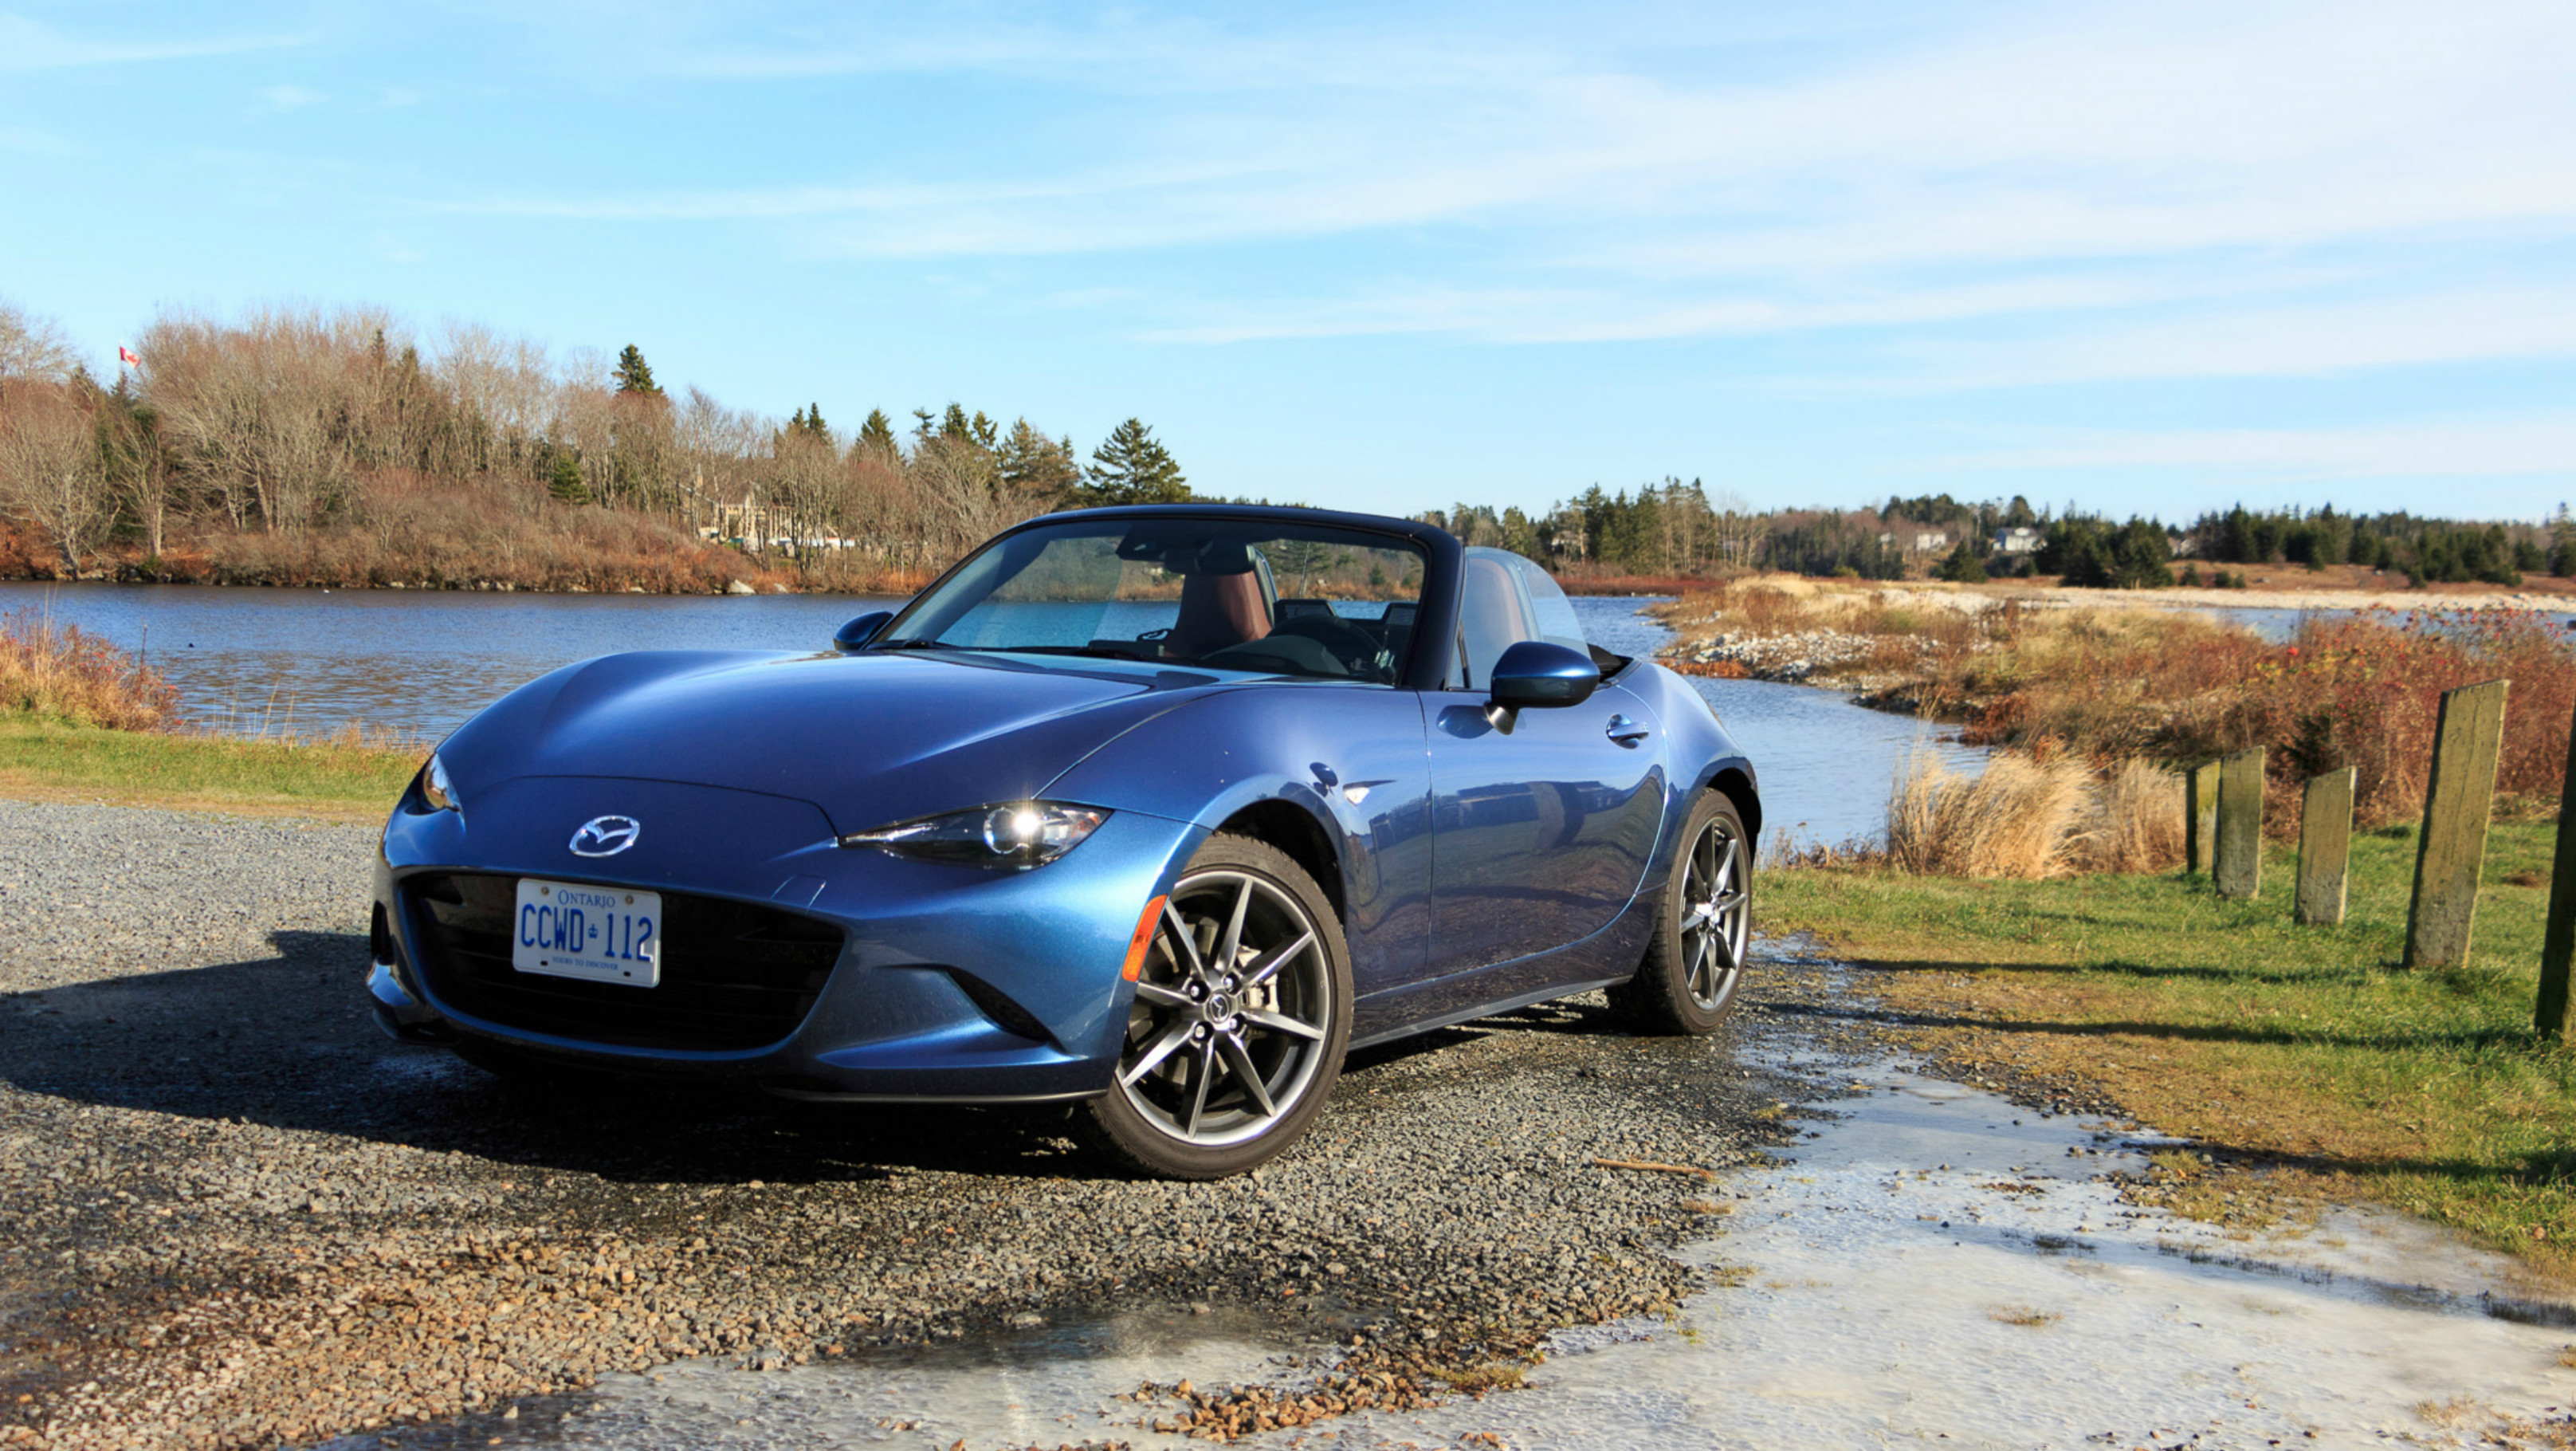 Review 2019 Mazda MX-5